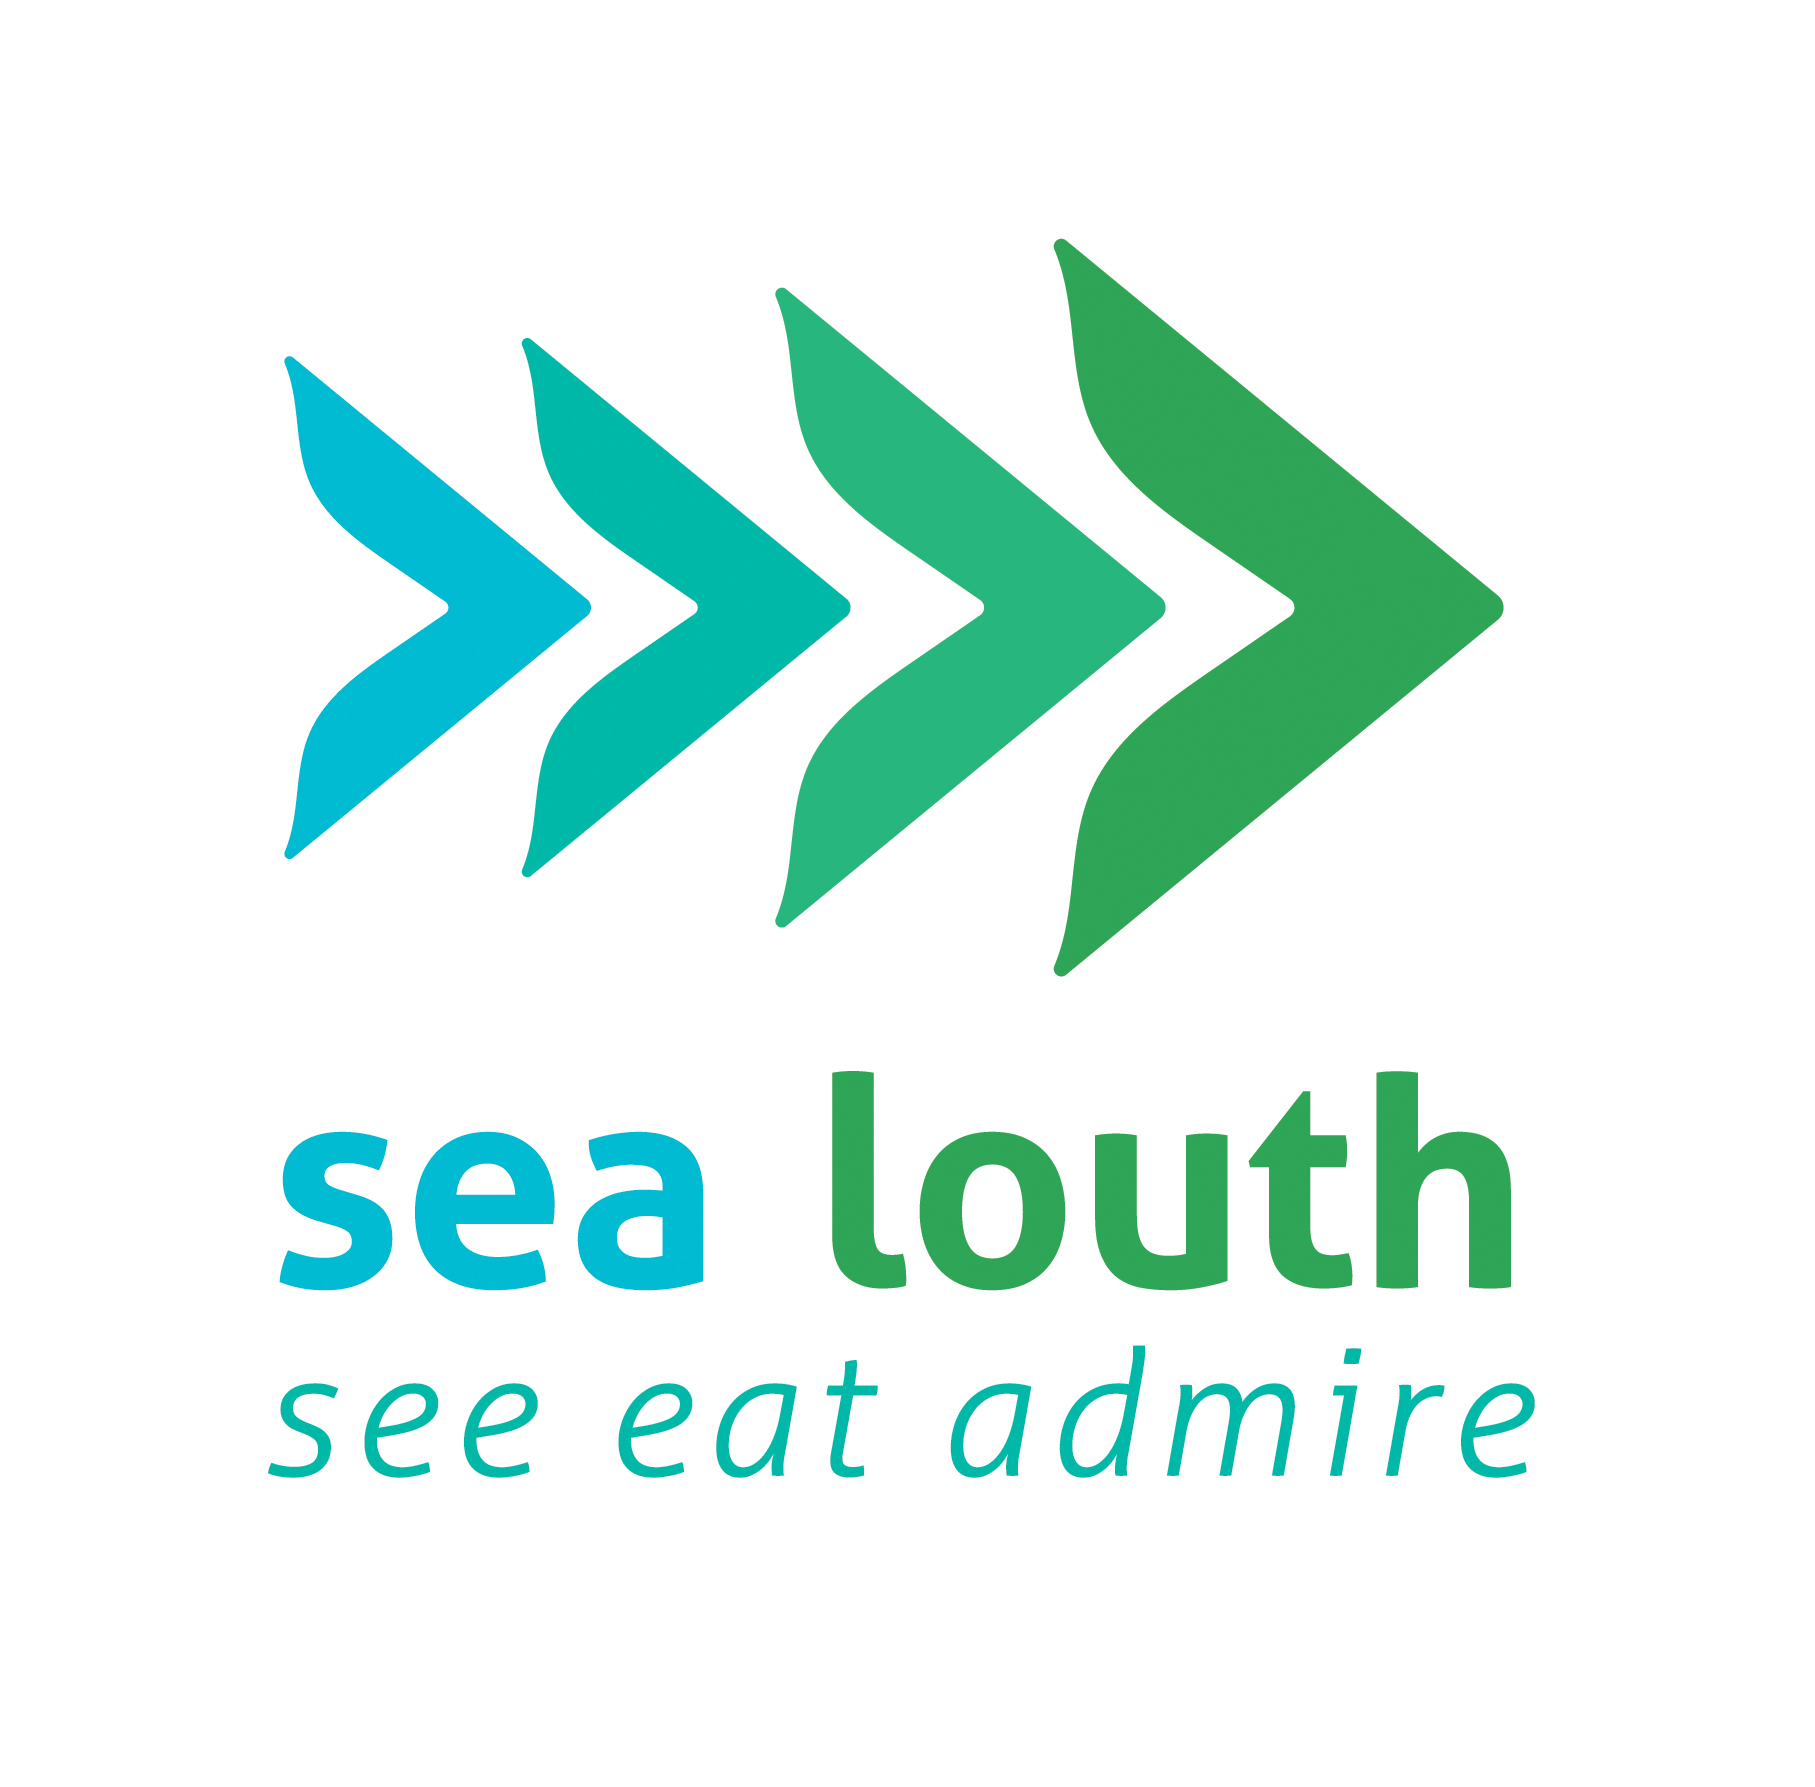 SeaLouth